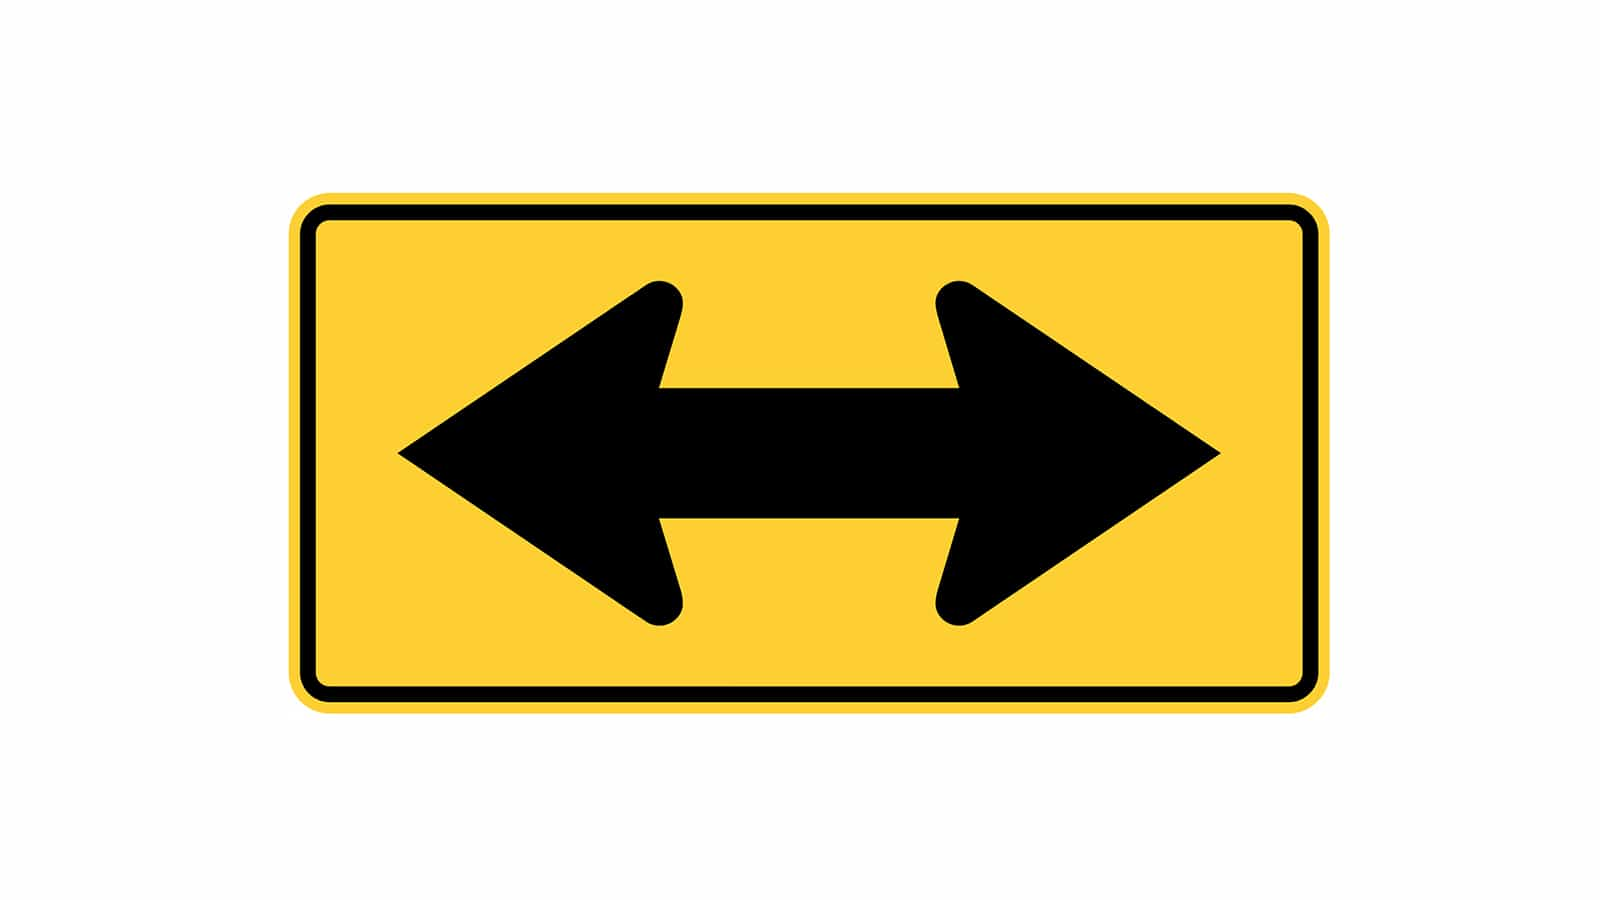 Warning sign Two Directional Arrow